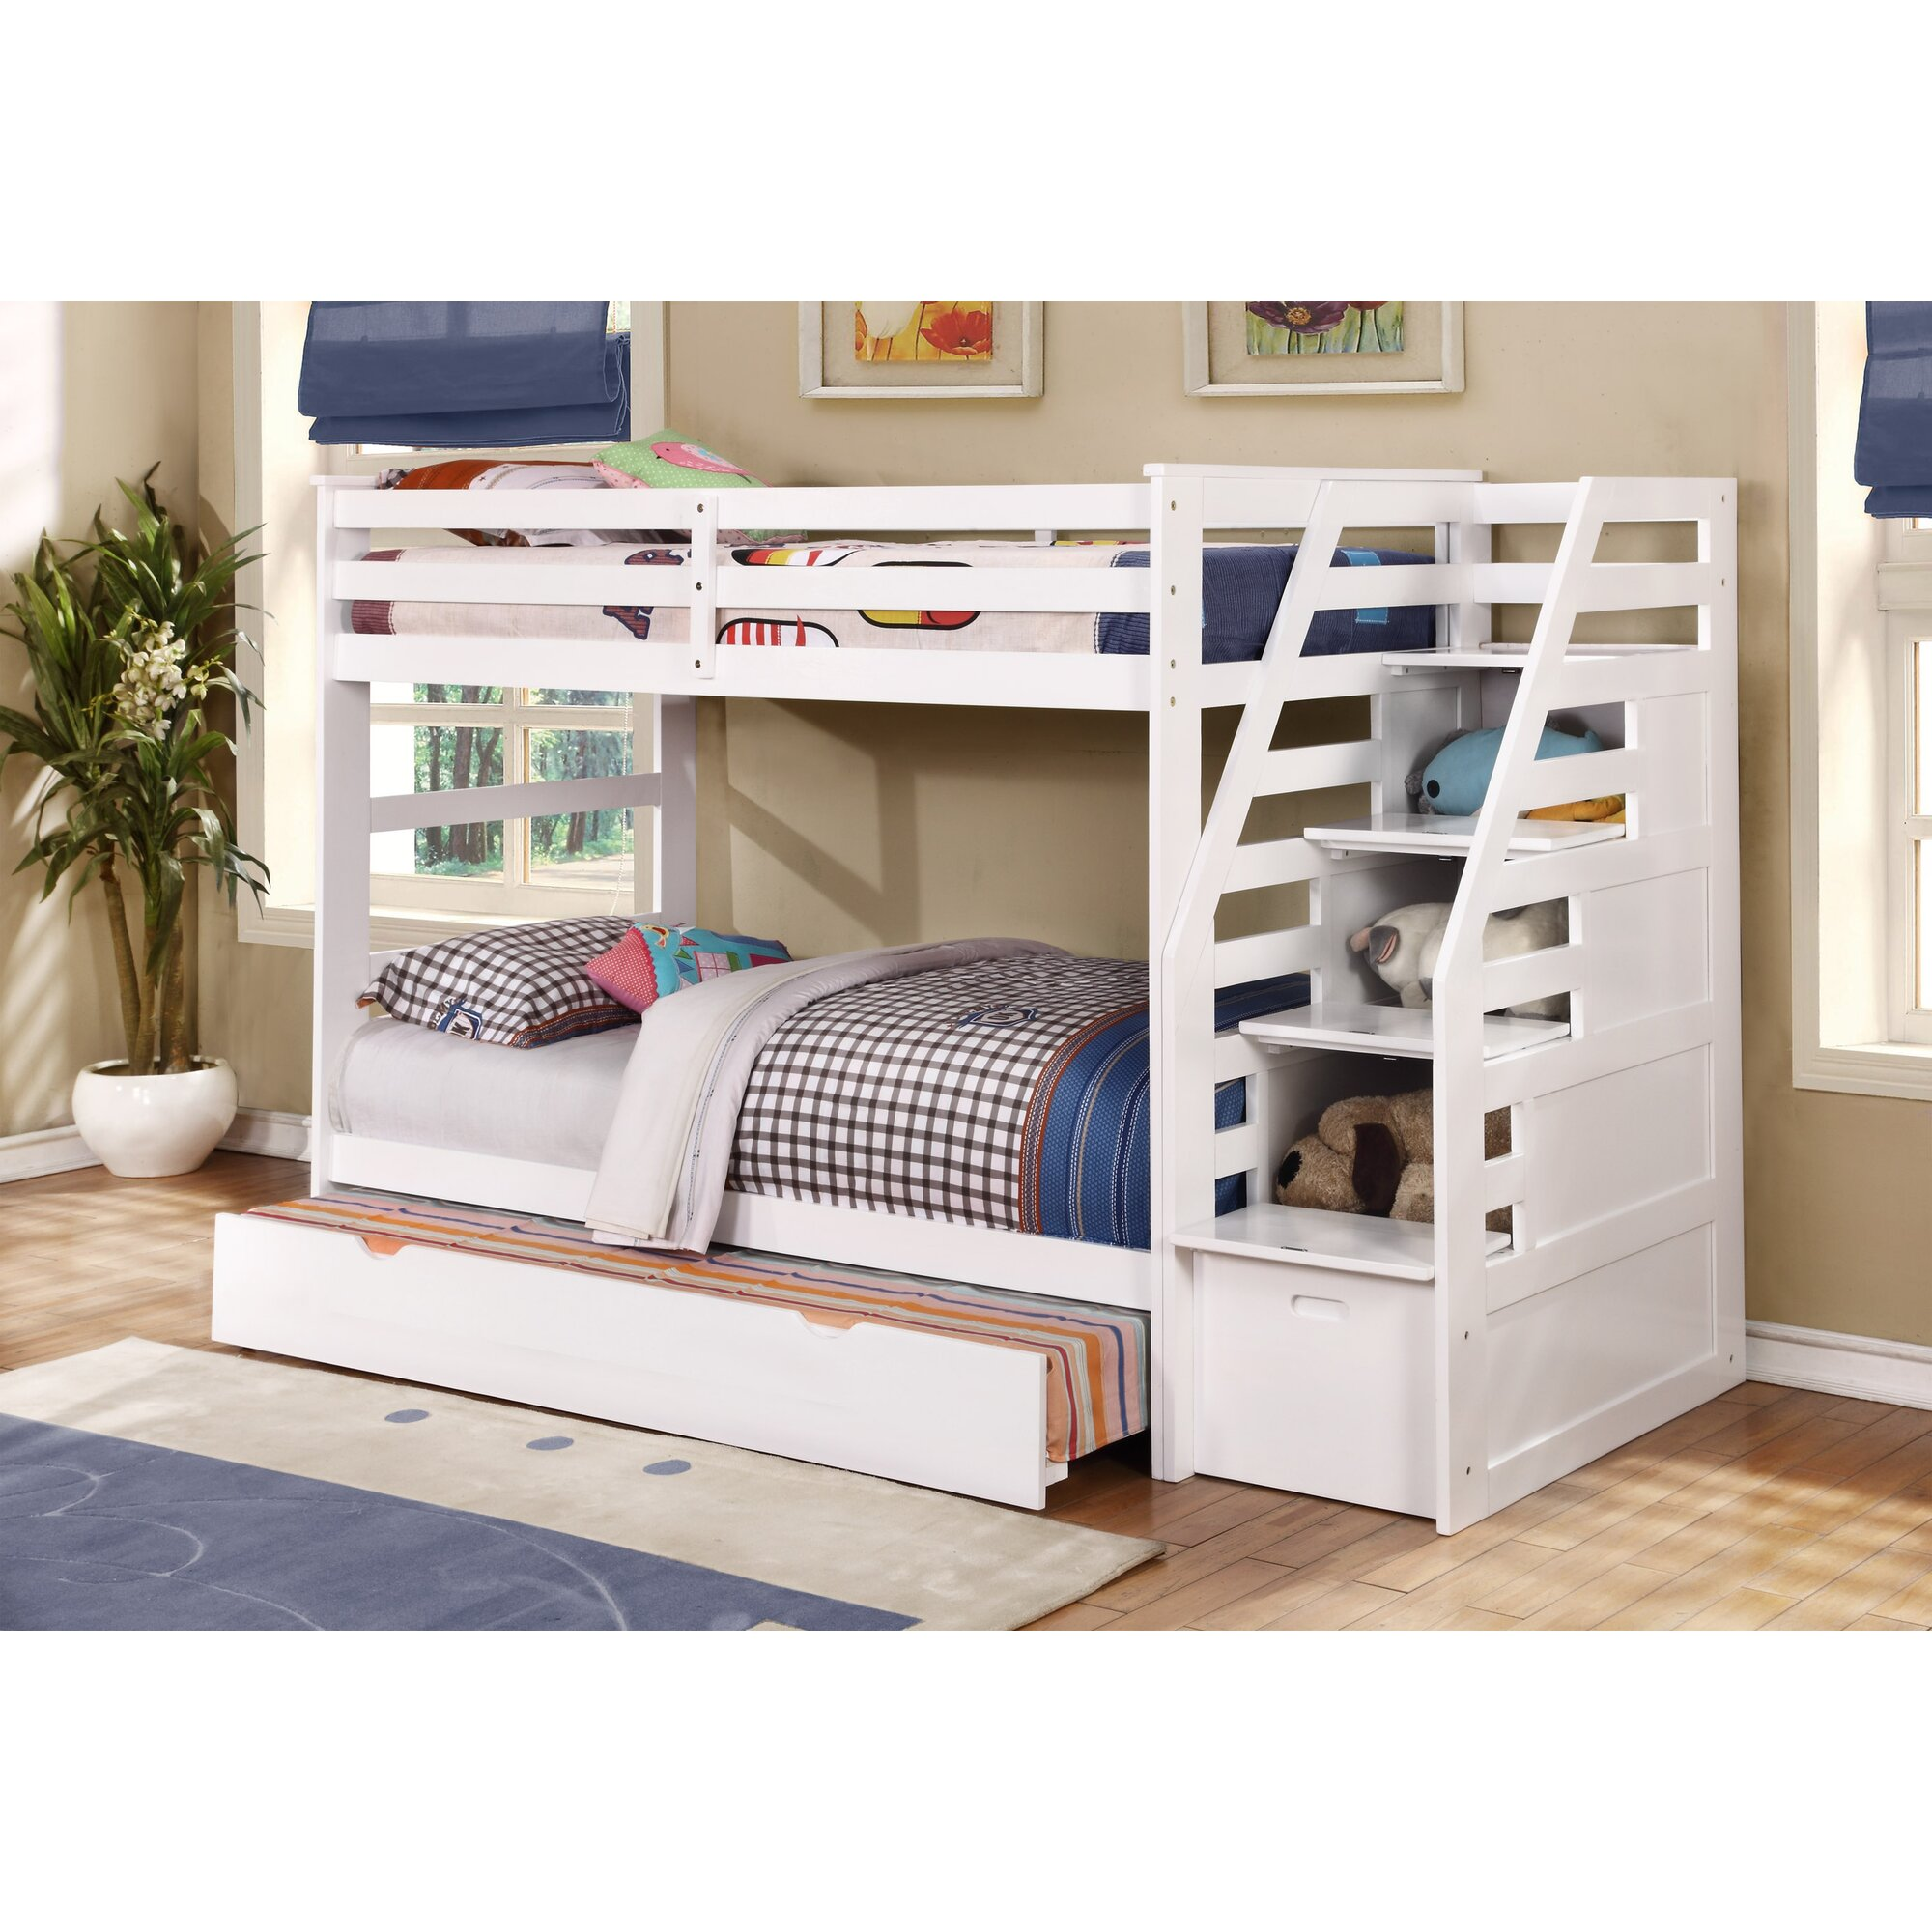 Wildon Home ® Cosmo Twin Bunk Bed with Trundle and Storage ...